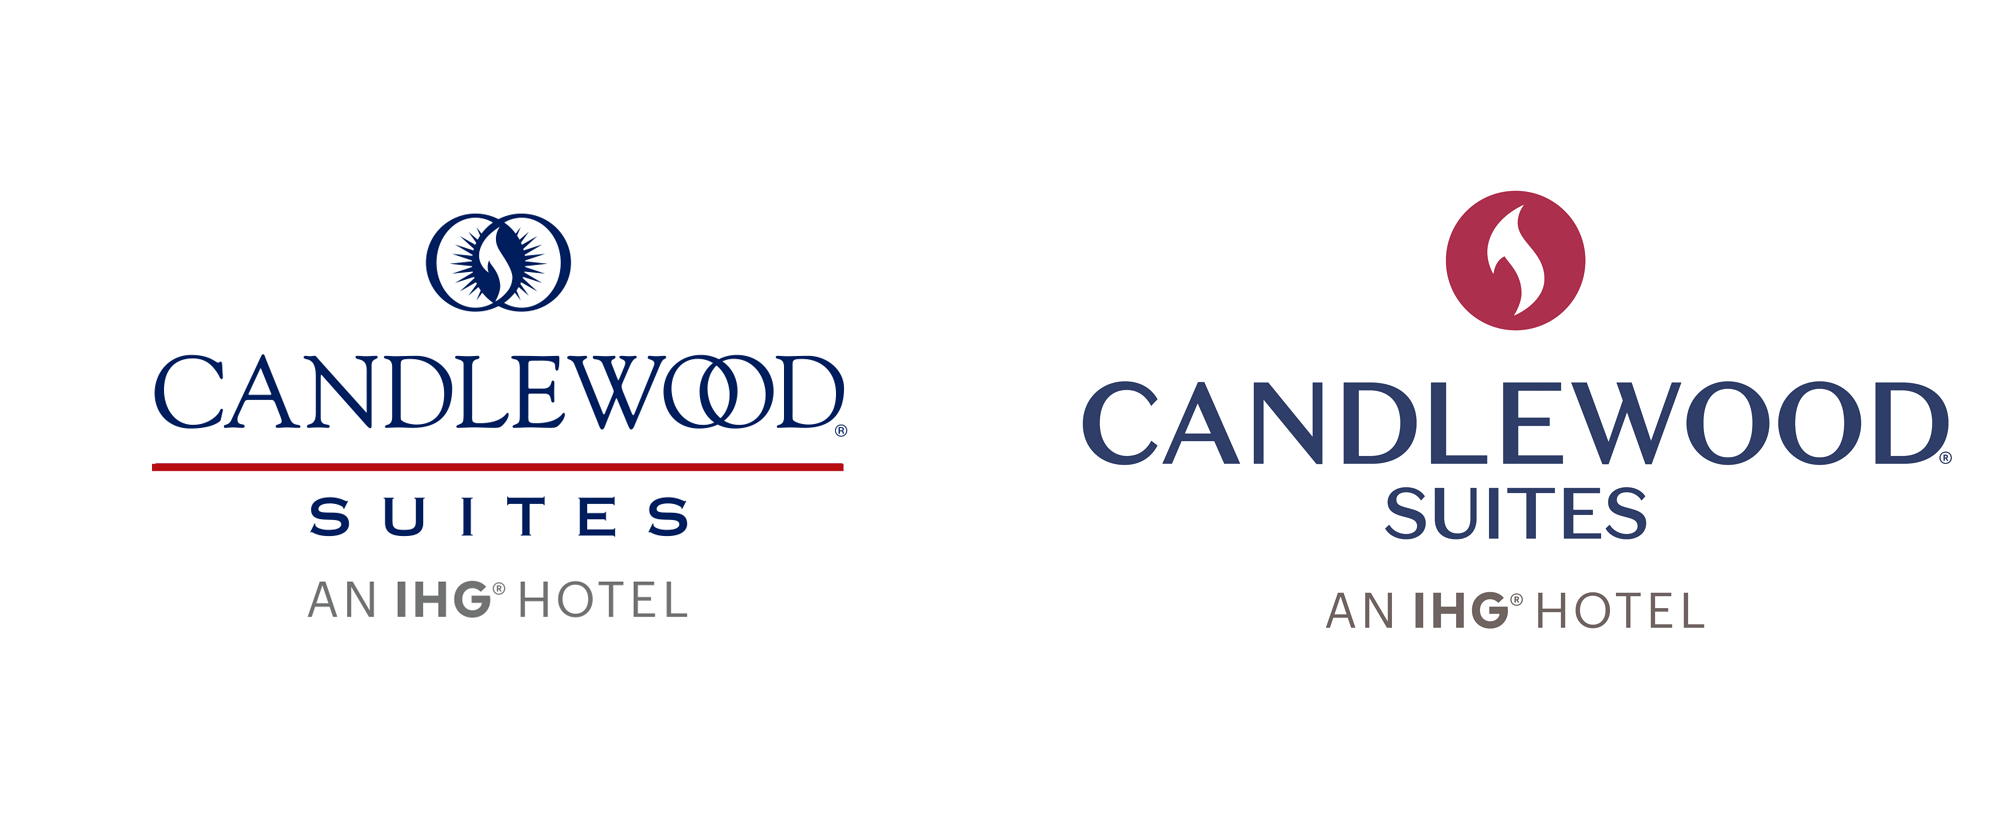 New Logo for Candlewood Suites by Stag & Hare